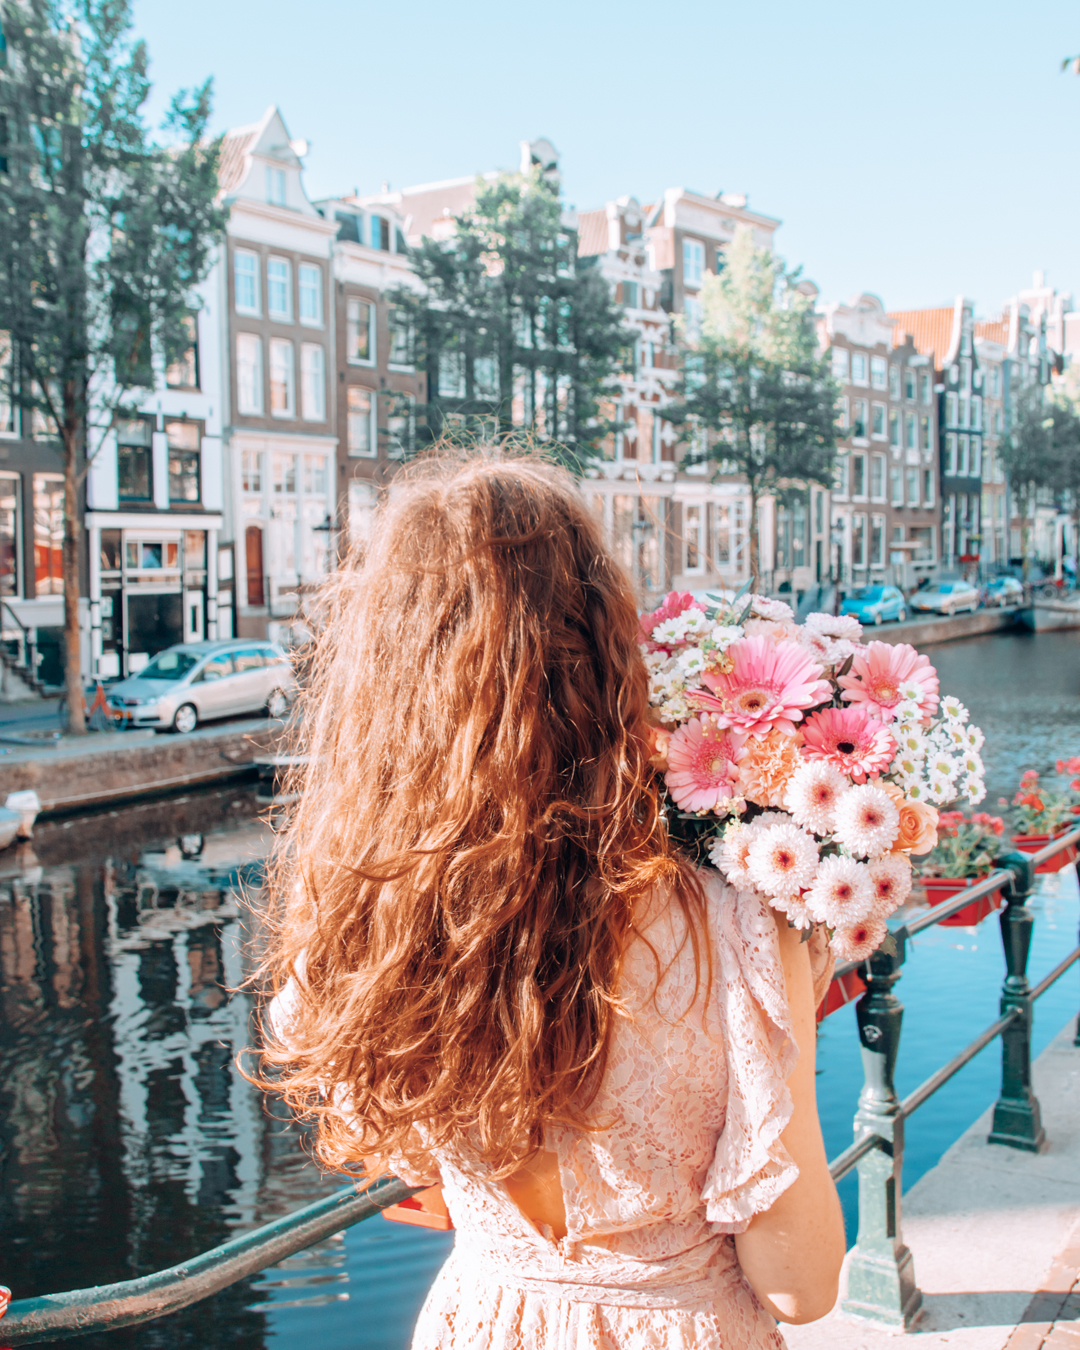 View of Amsterdam and a girl with flowers